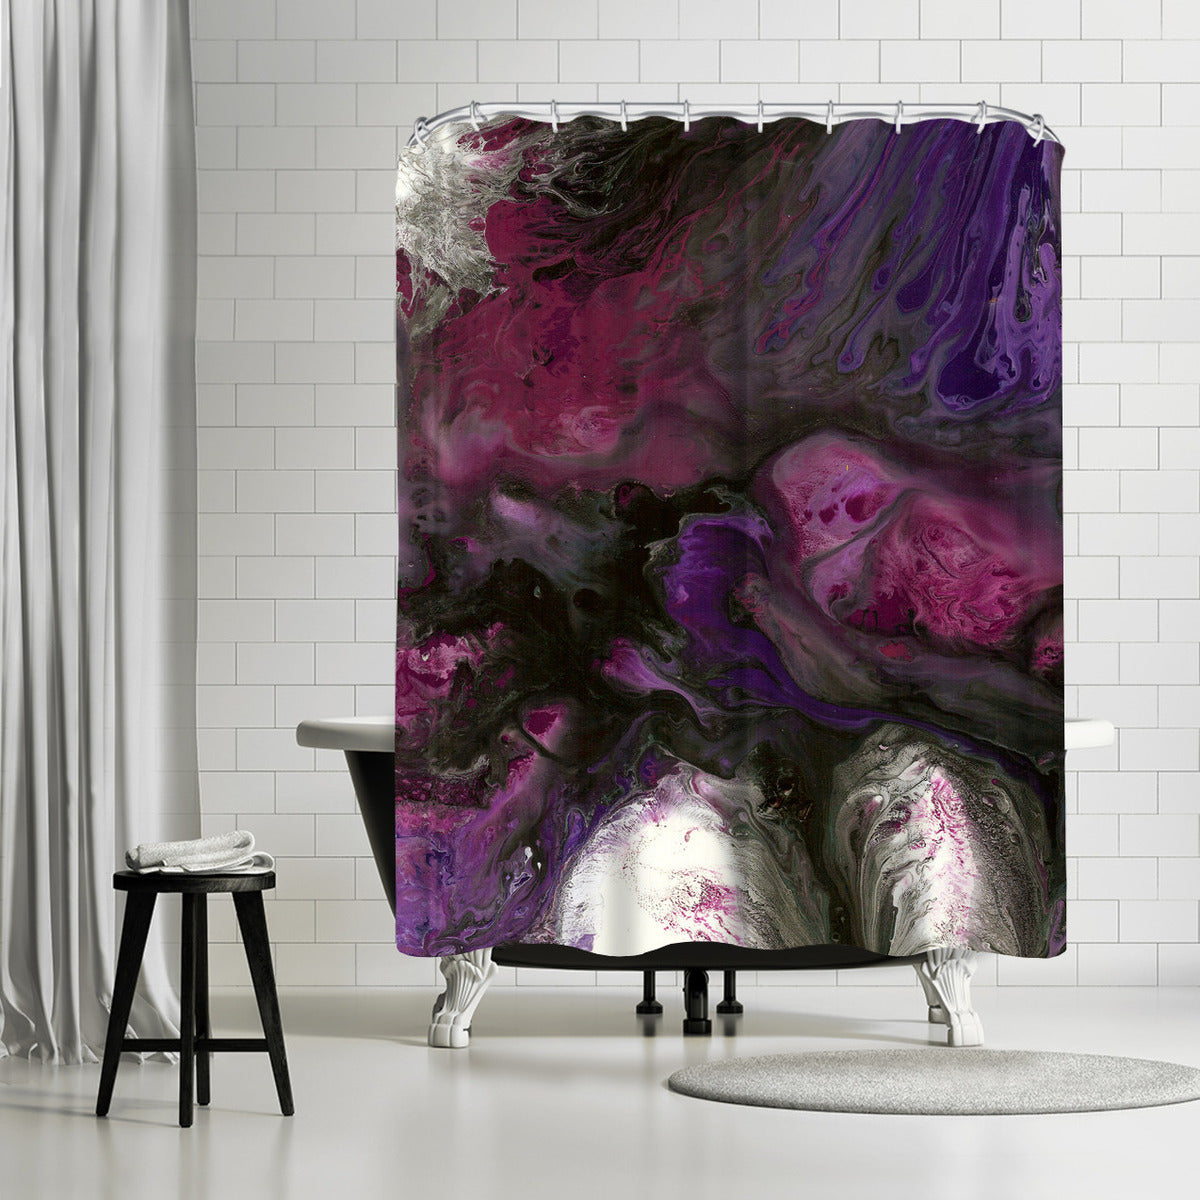 Passion by Destiny Womack Shower Curtain -  - Americanflat